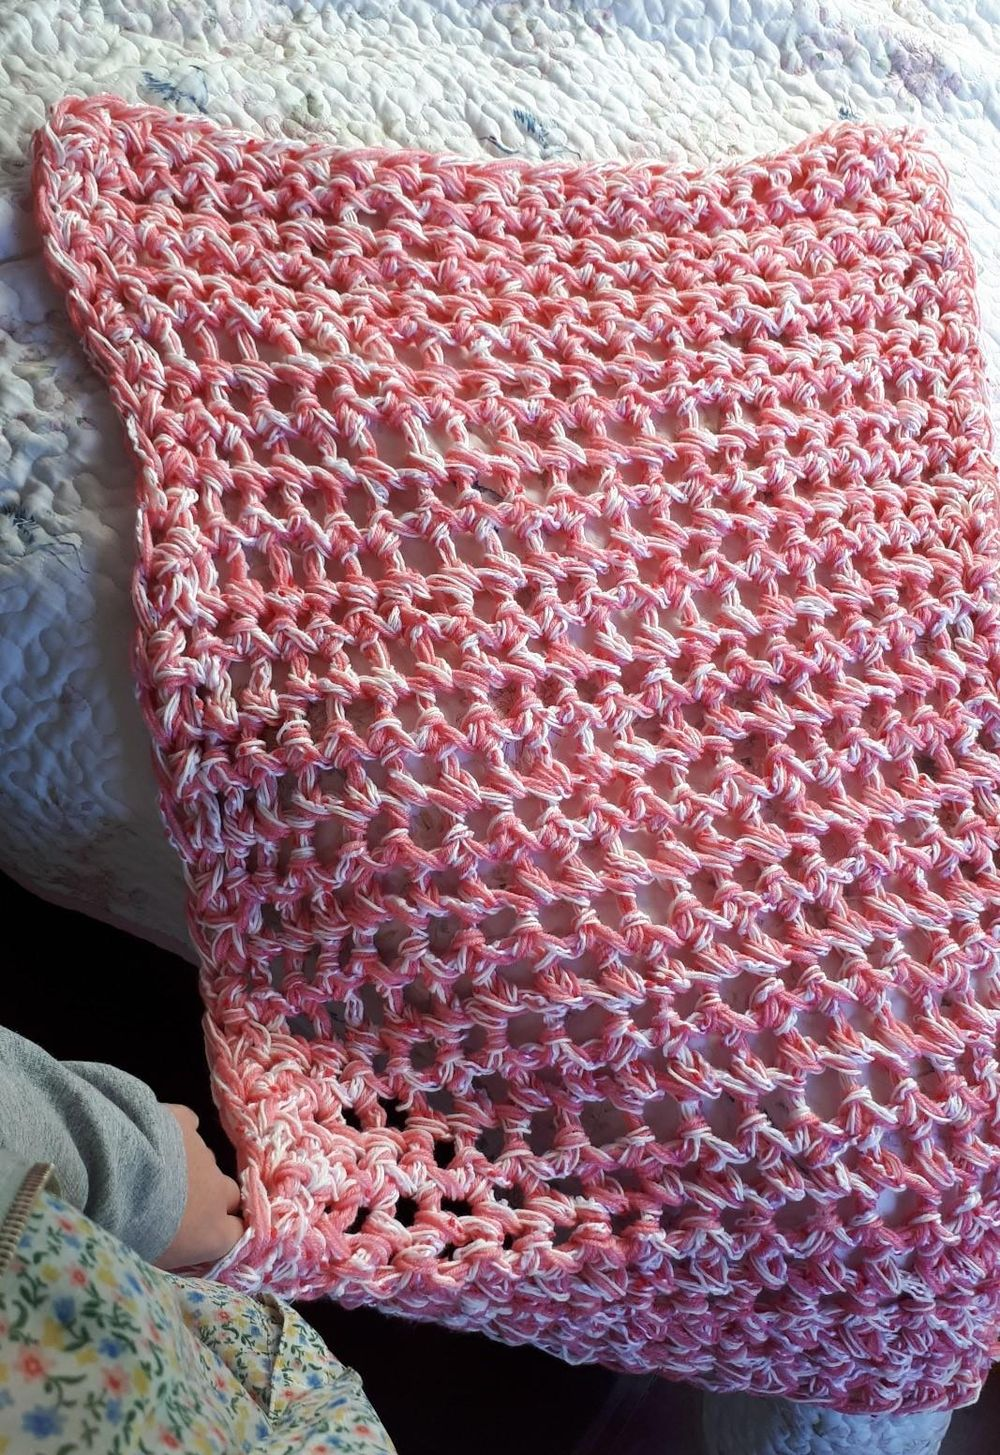 my blanket! - image 1 - student project